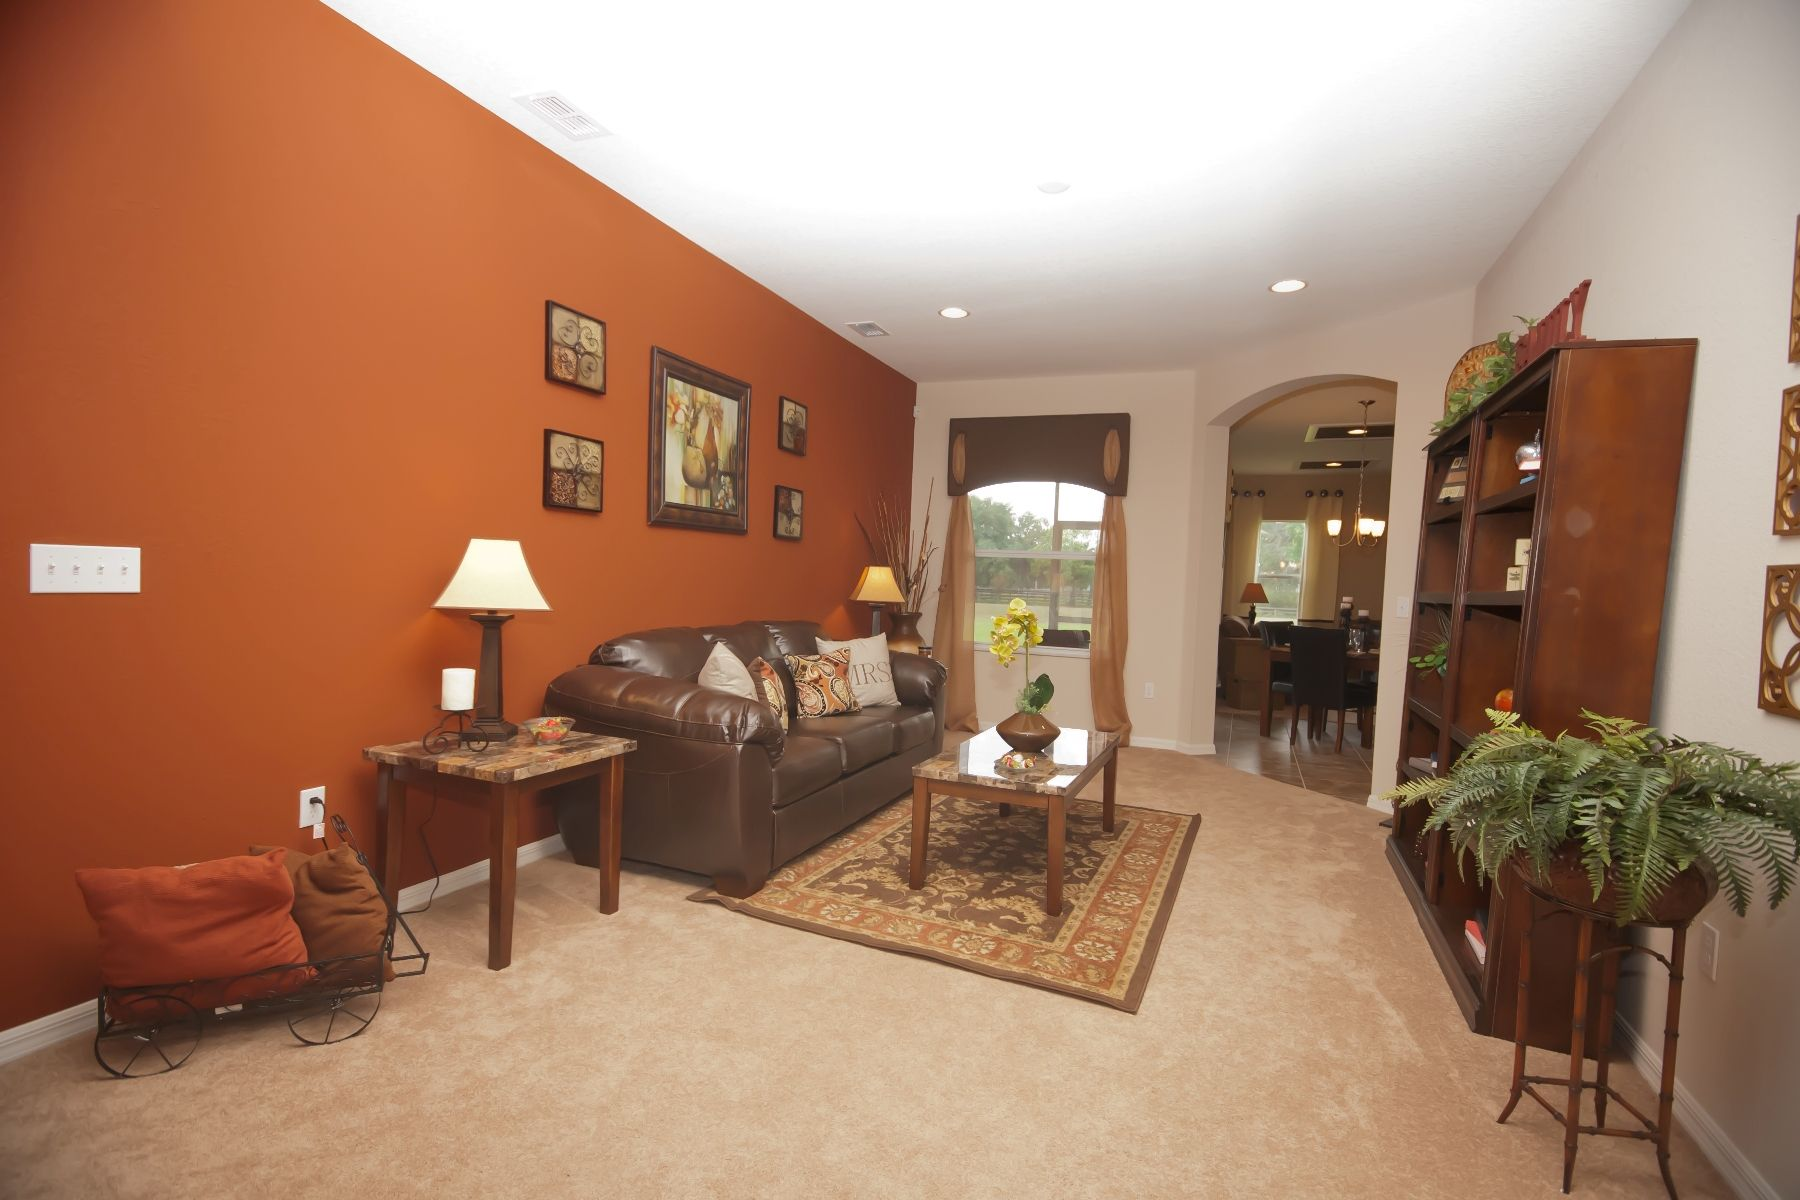 Best Burnt Orange Accent Wall Perfectly Pairs With The Neutral 400 x 300